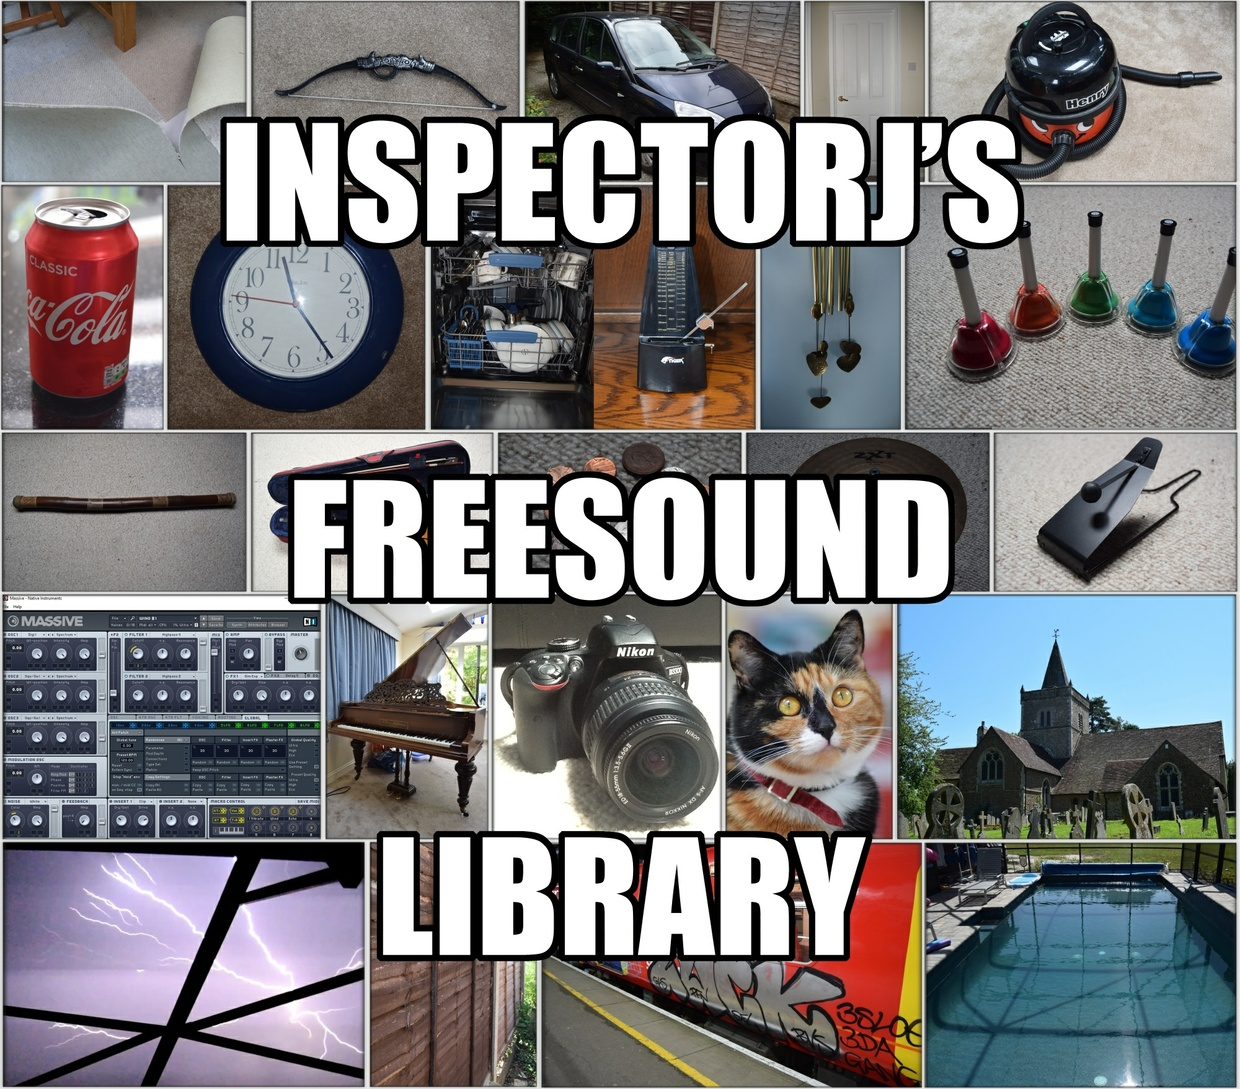 InspectorJ's Freesound Library (License Only)